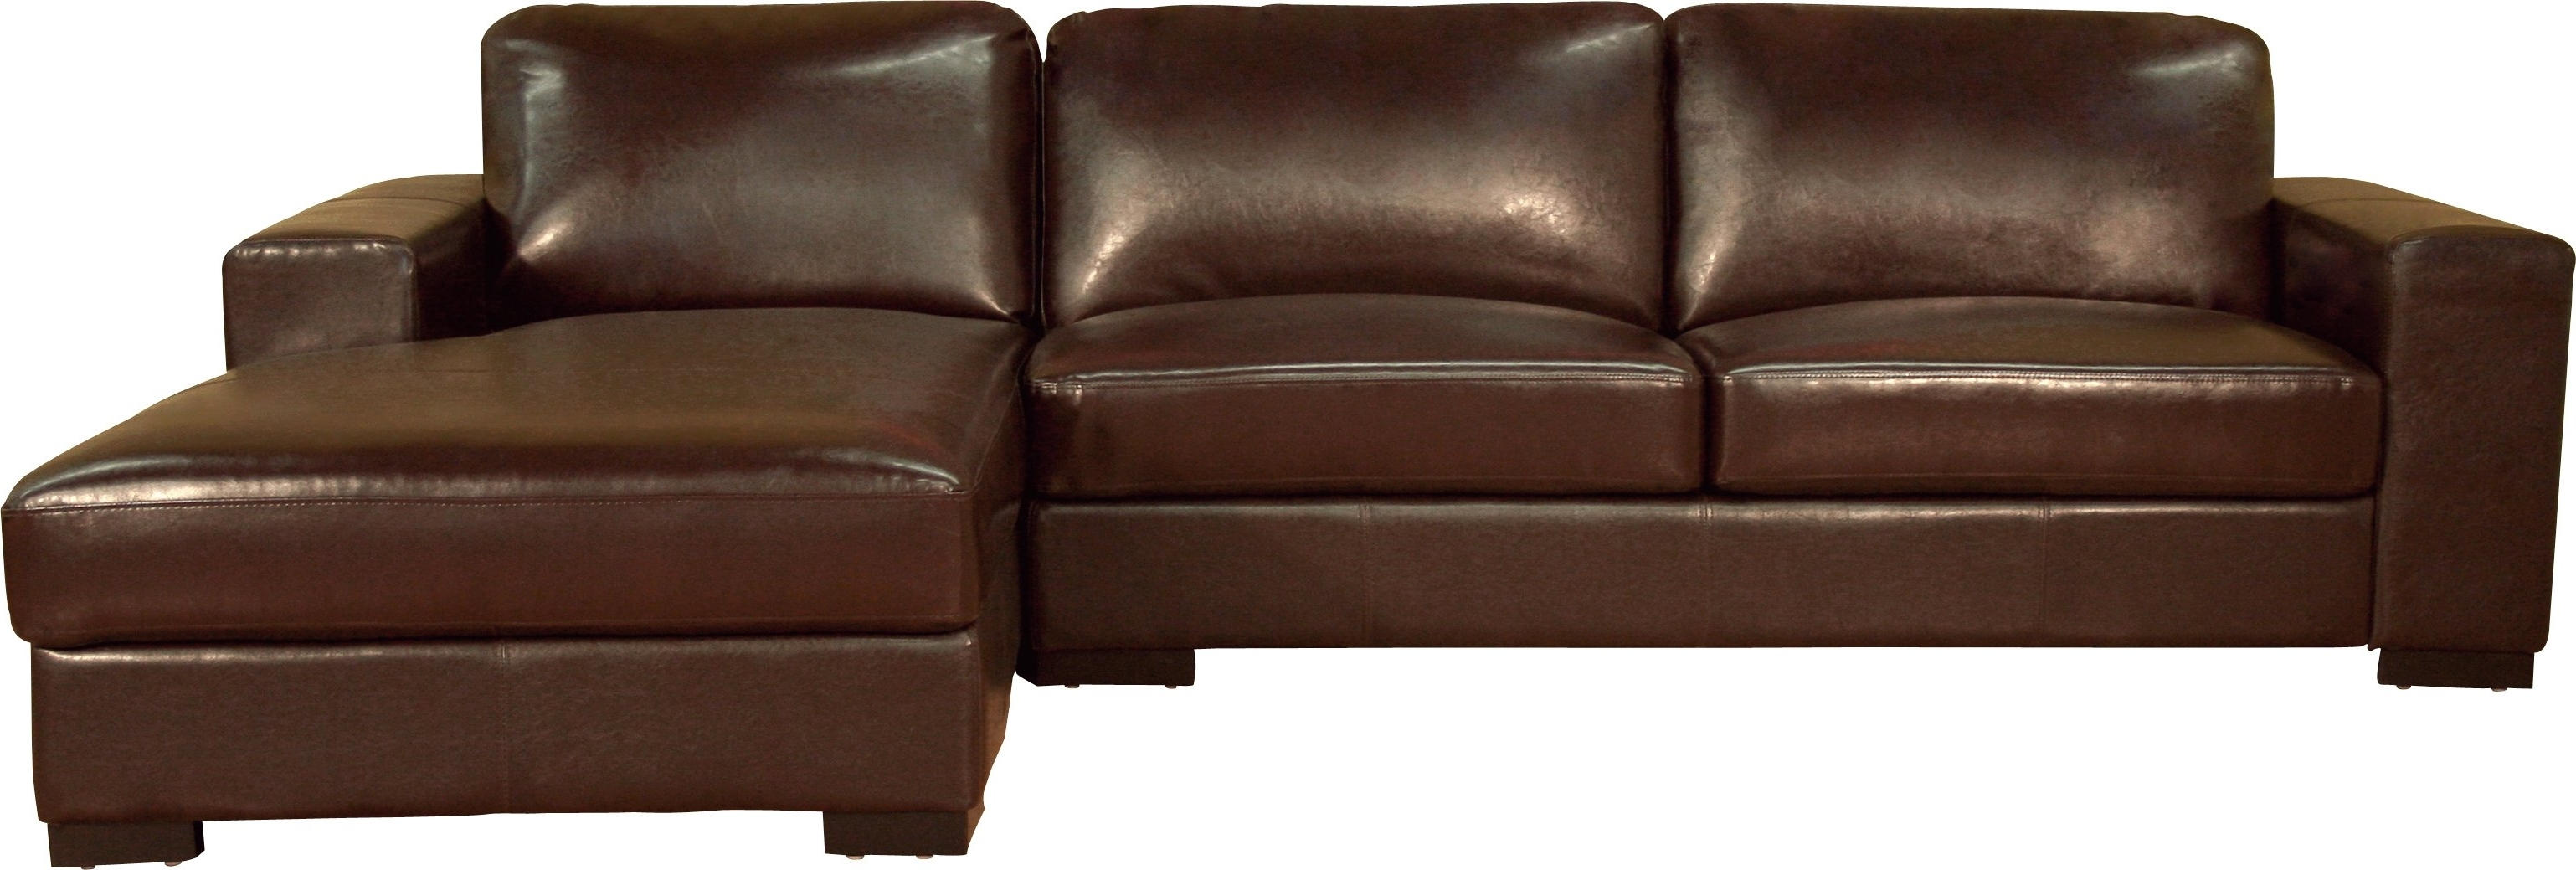 2017 Leather Sofas With Chaise Intended For Tight Brown Leather Sectional Chaise Couch Of Pleasurable Brown (View 10 of 15)